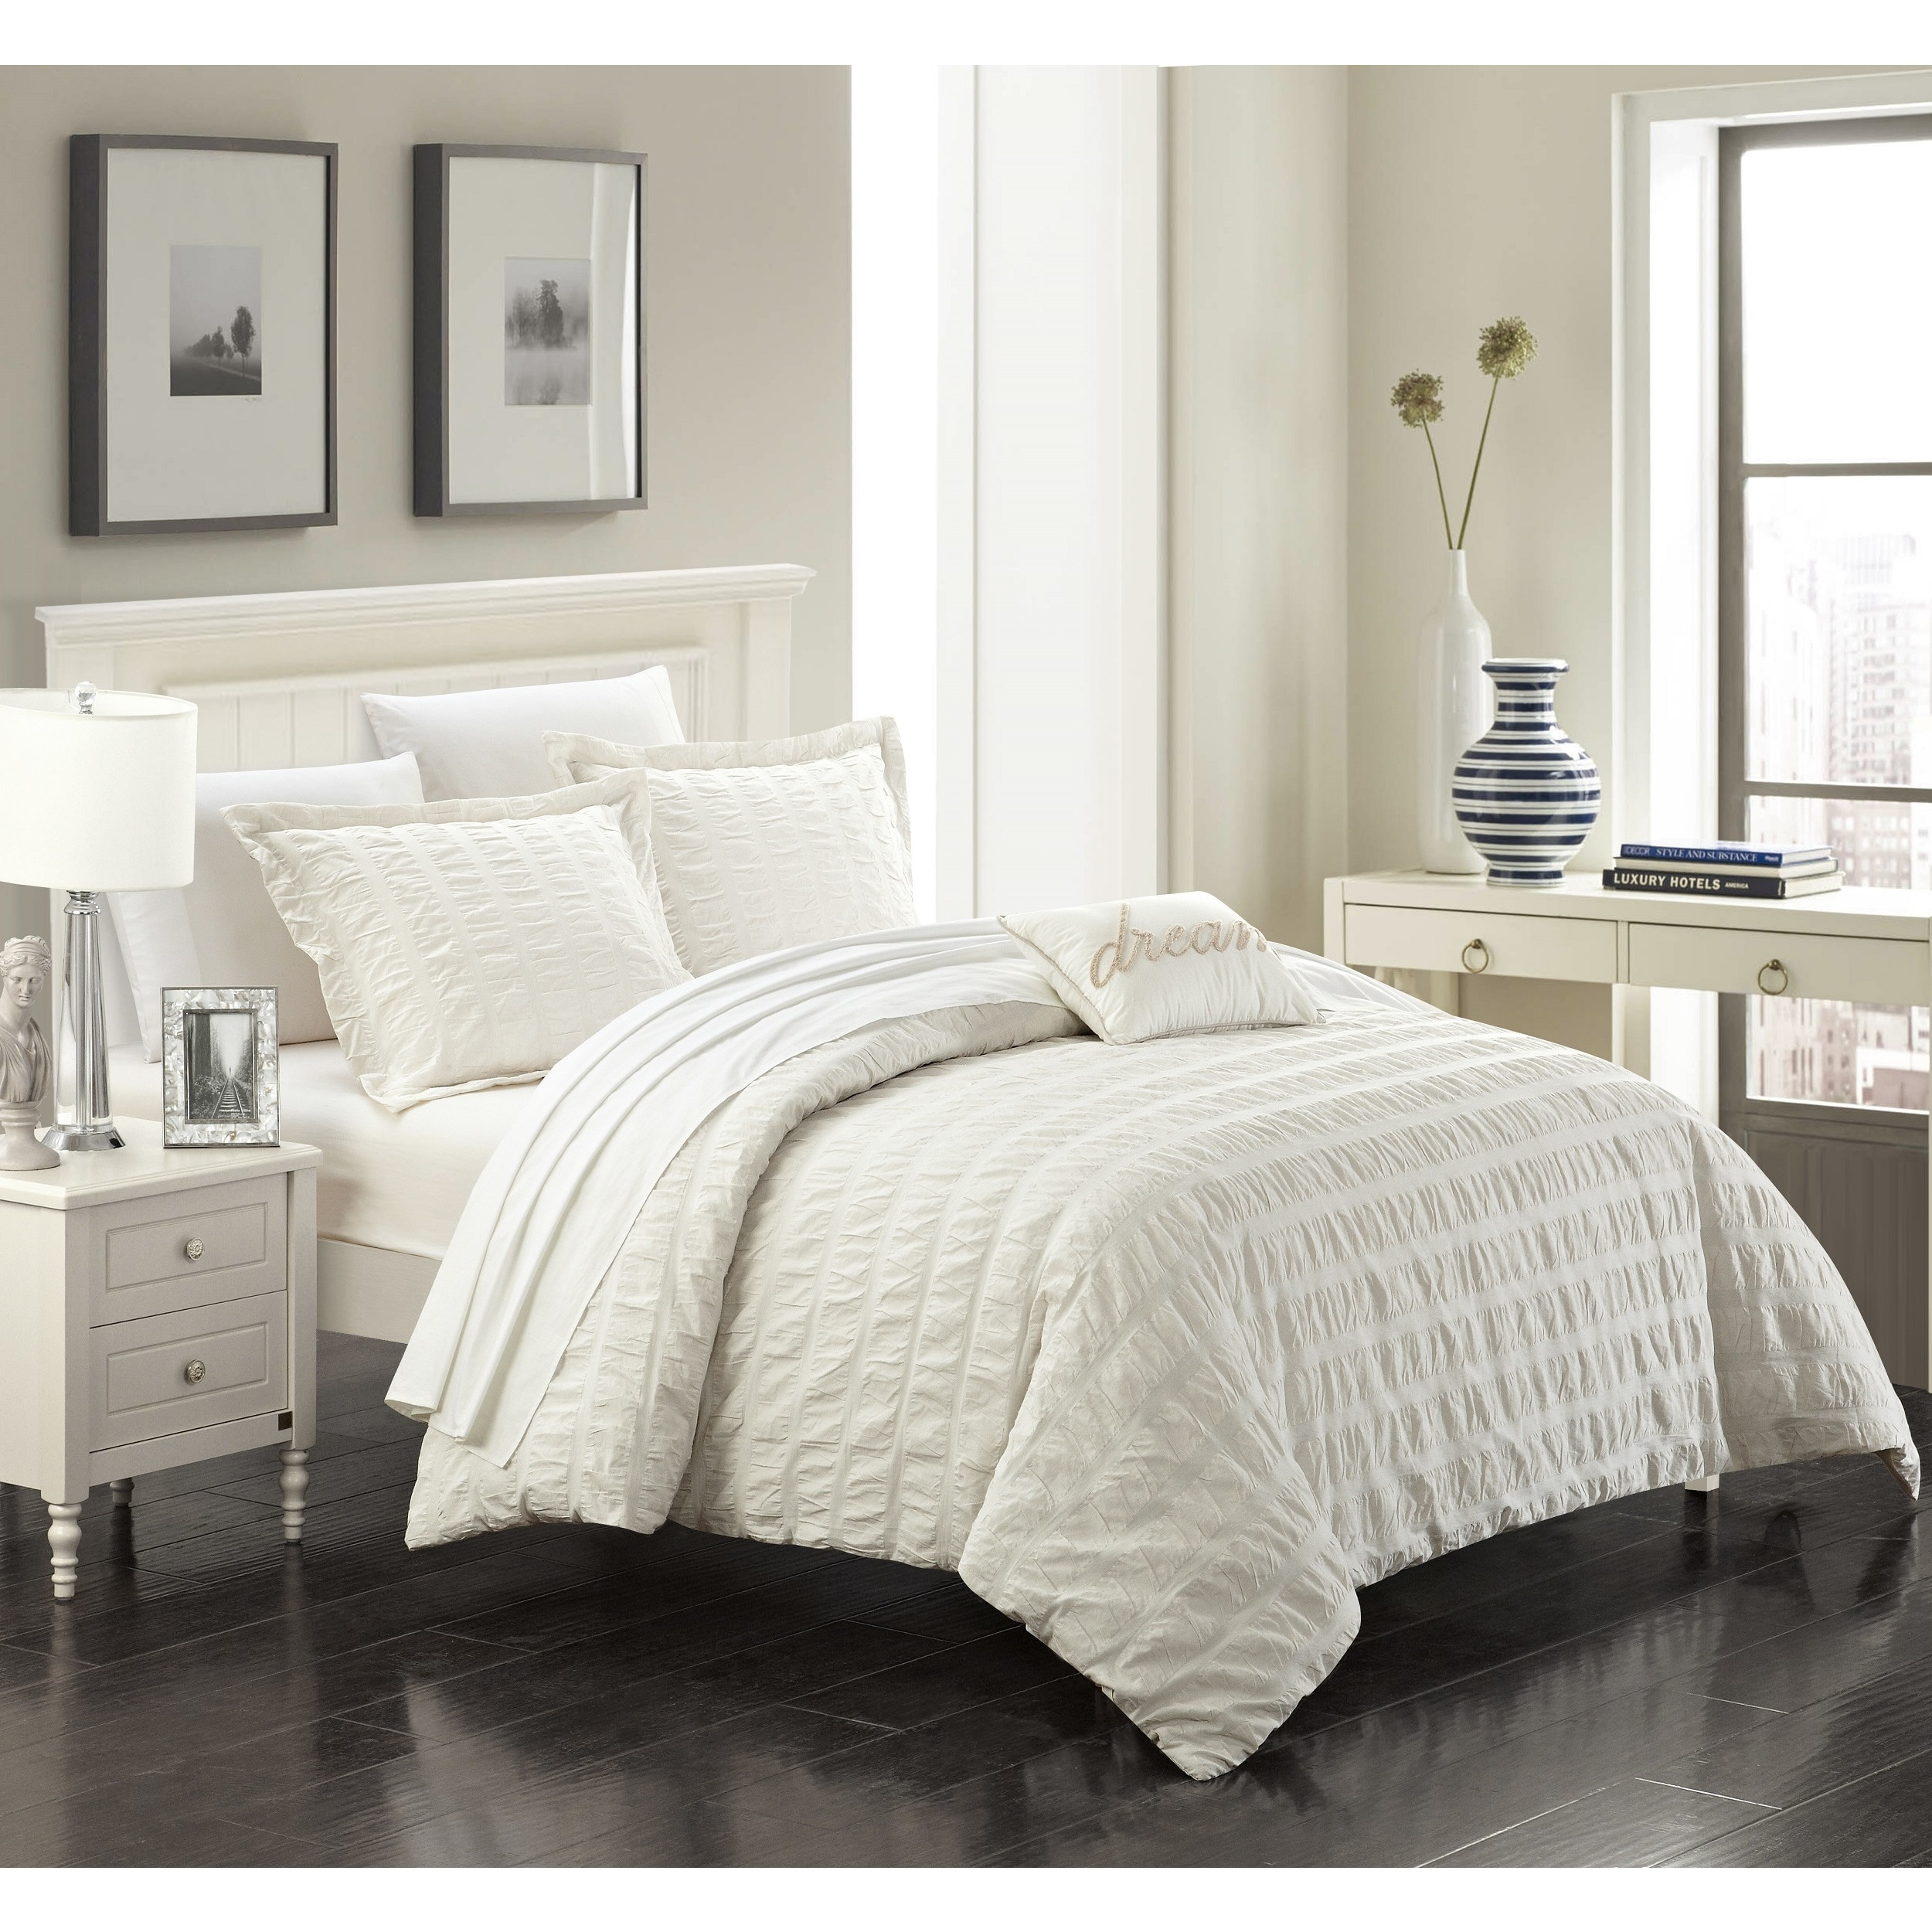 Chic Home Tornio 4 Piece Cotton Beige Duvet Cover Set Overstock 16394686 King